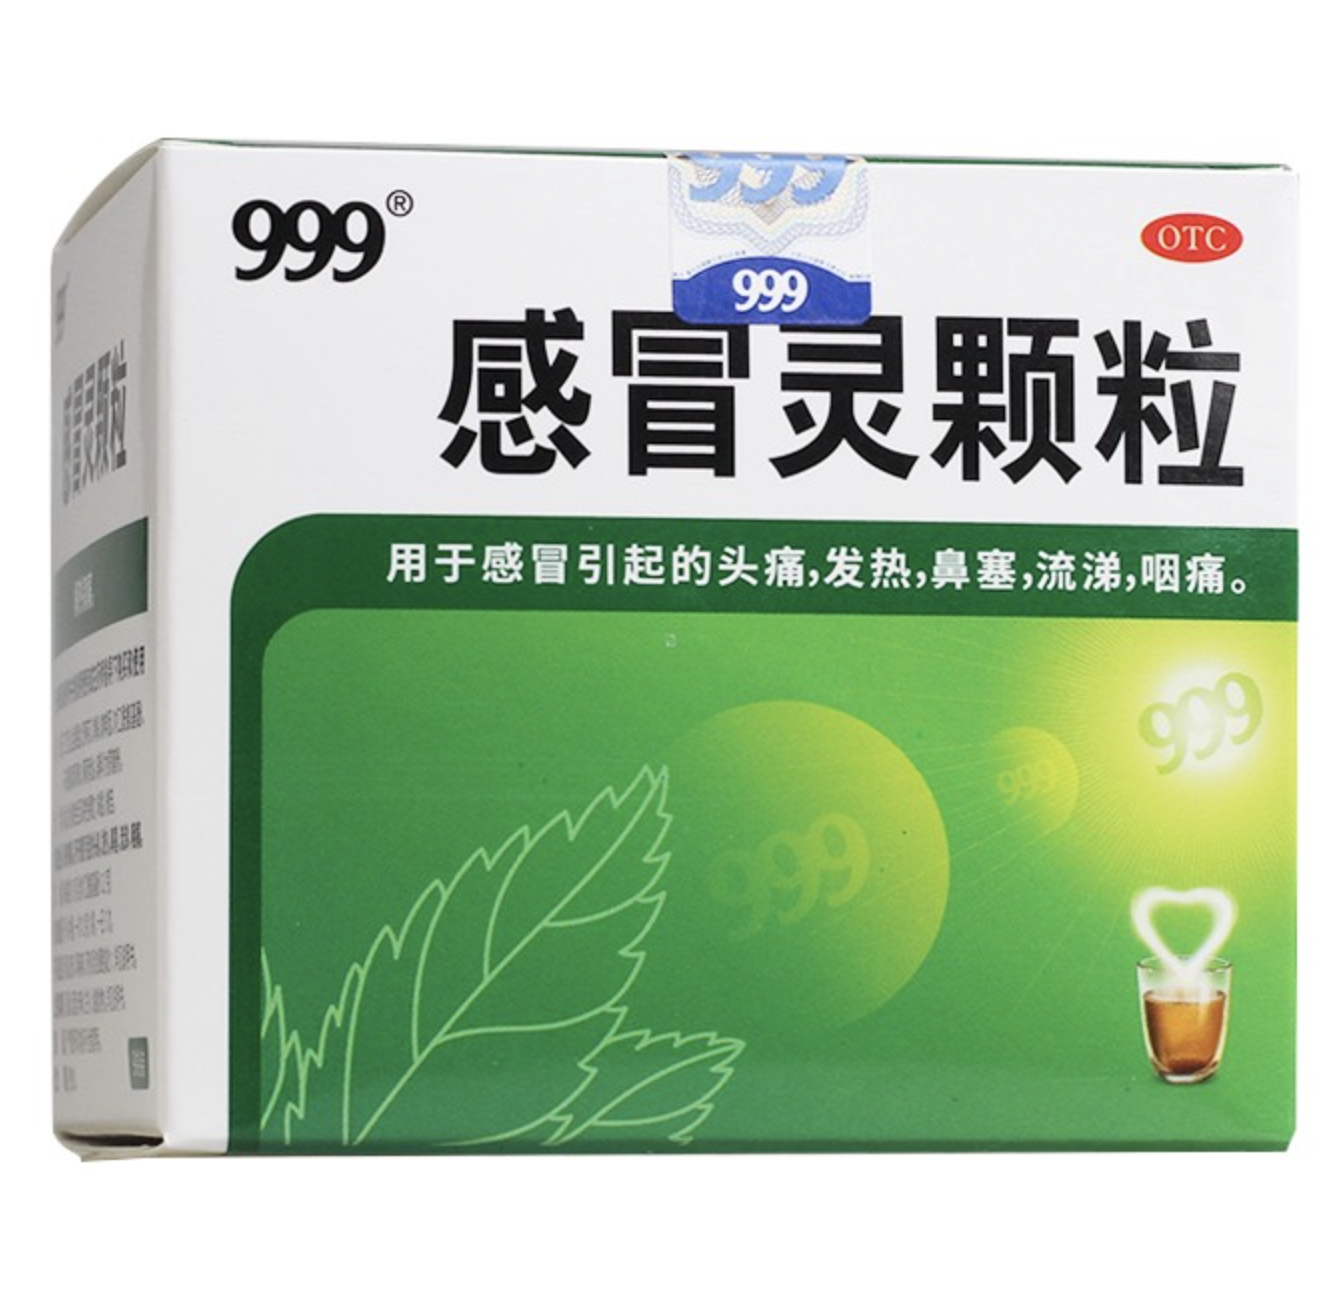 999 感冒灵颗粒 Ganmaoling Keli 1 package